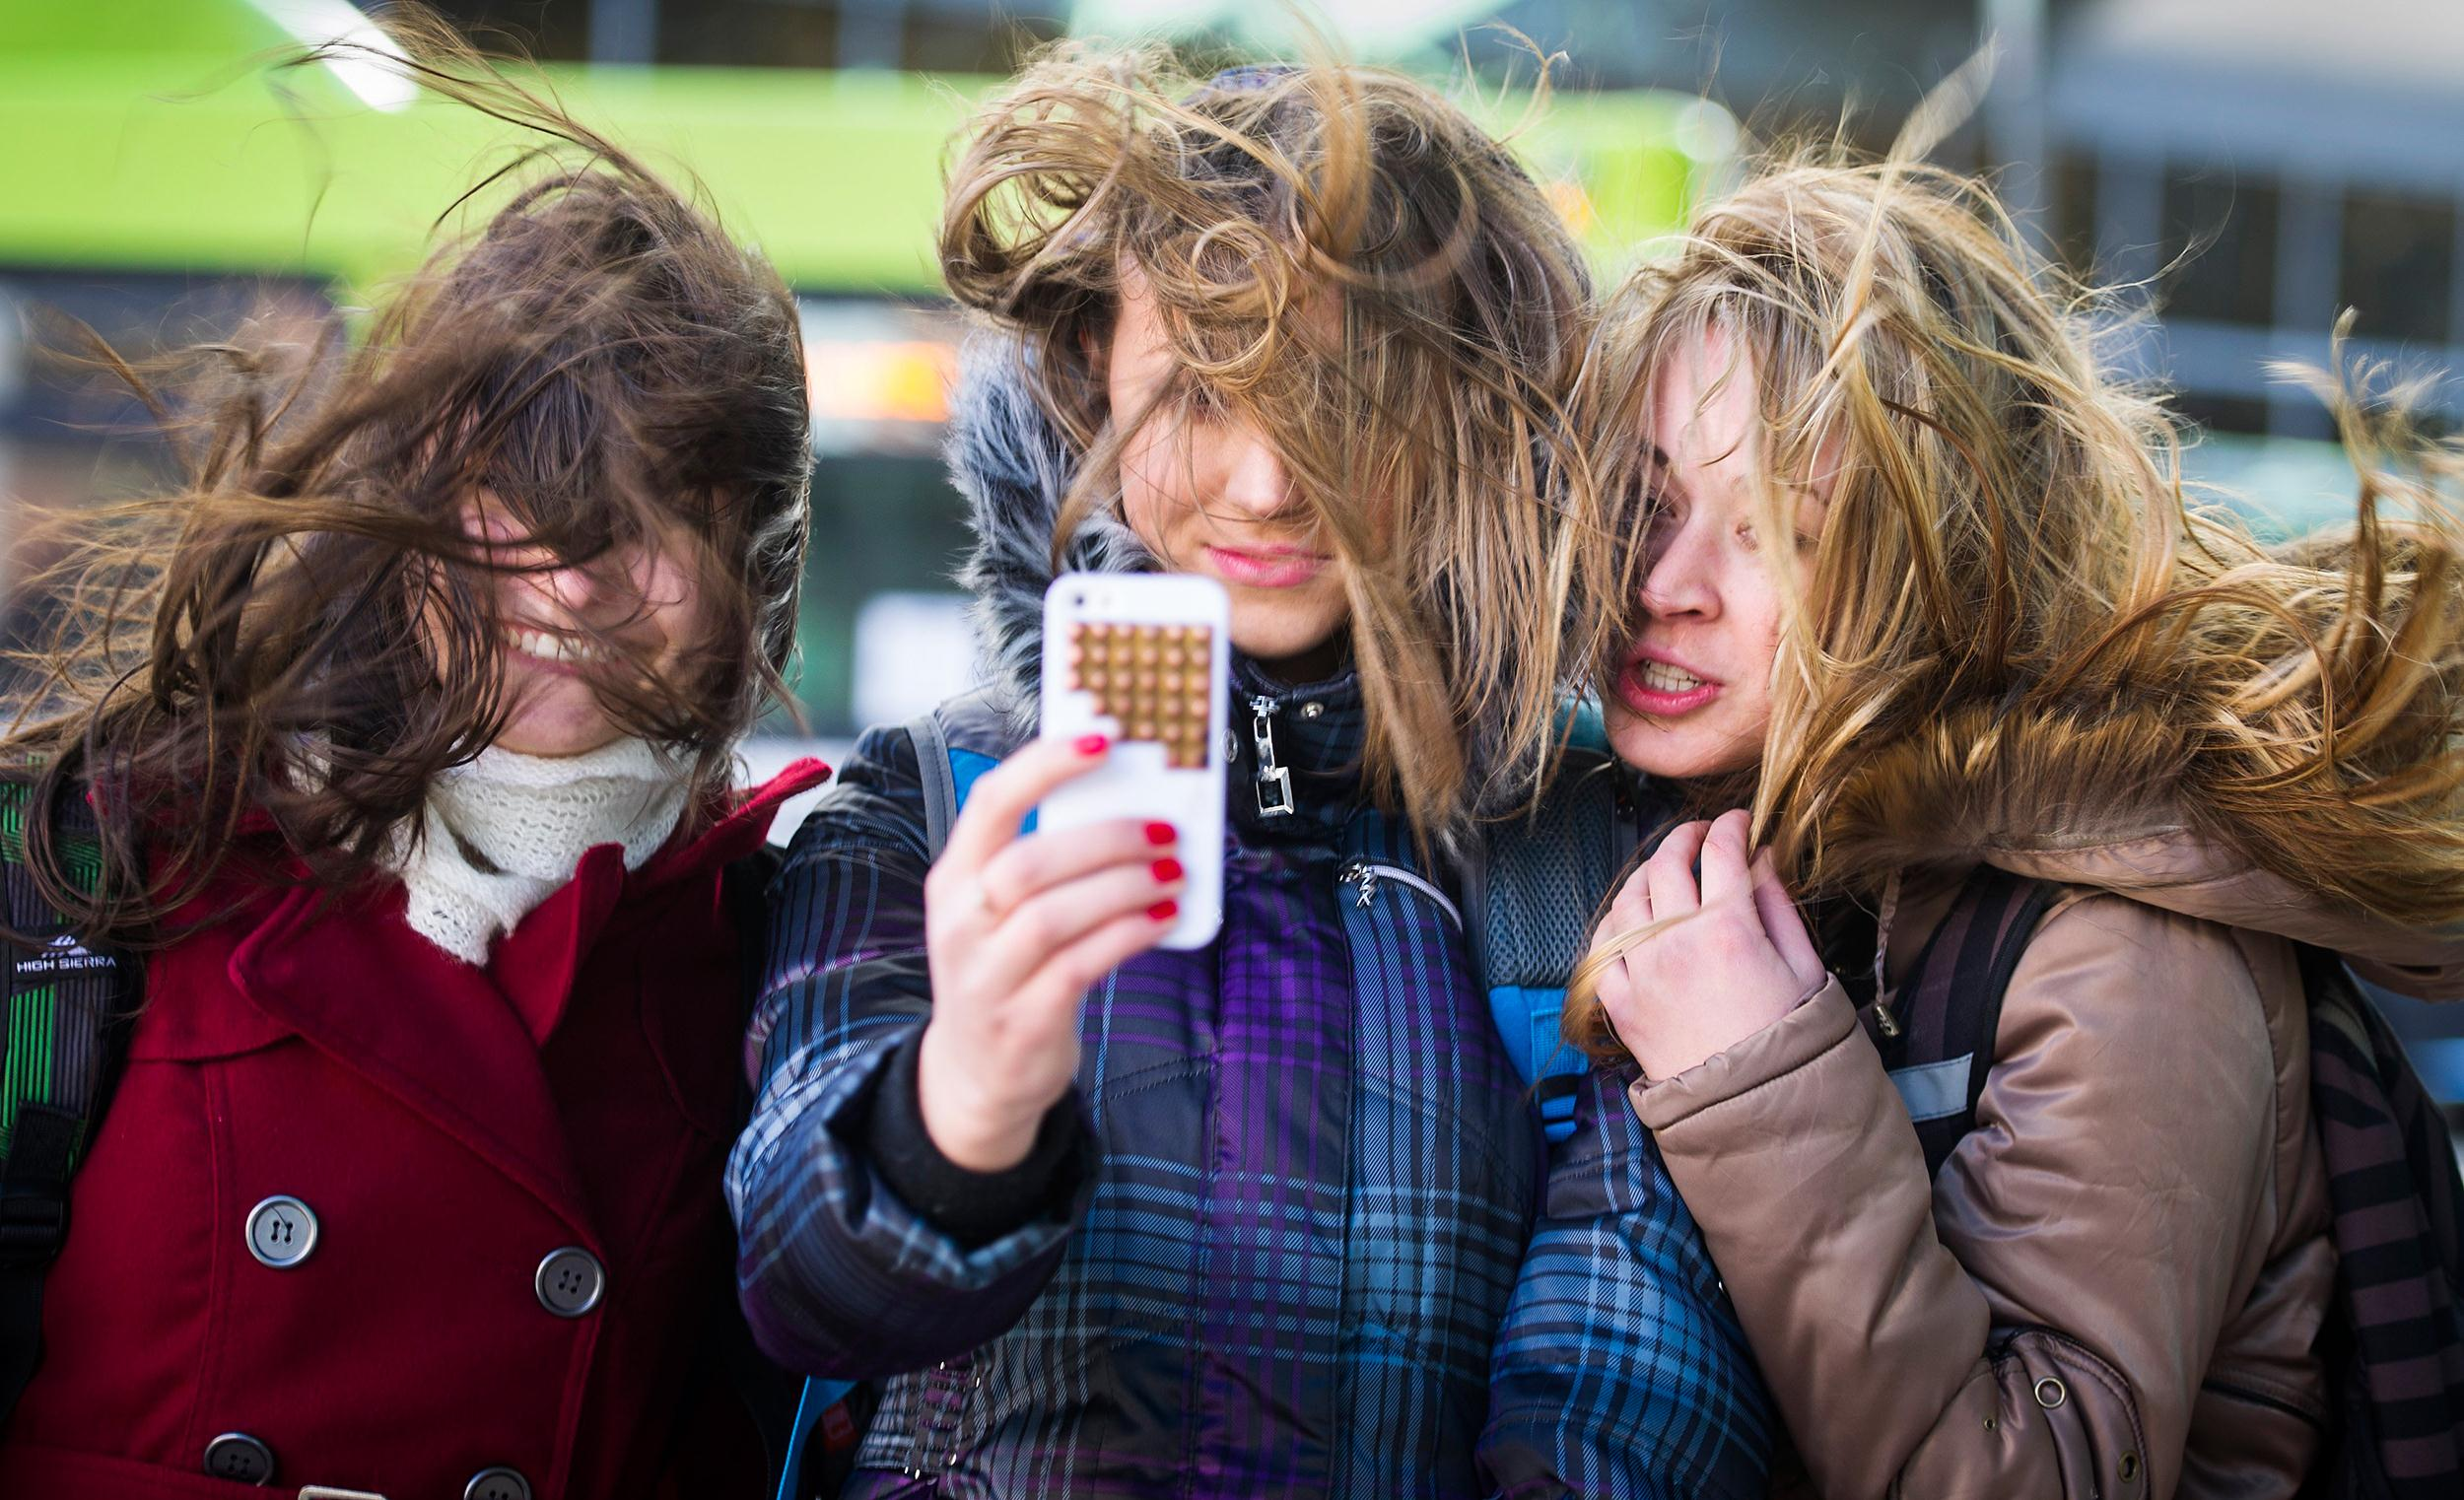 Image: Three young women take a group selfie of their hair flying in the wind